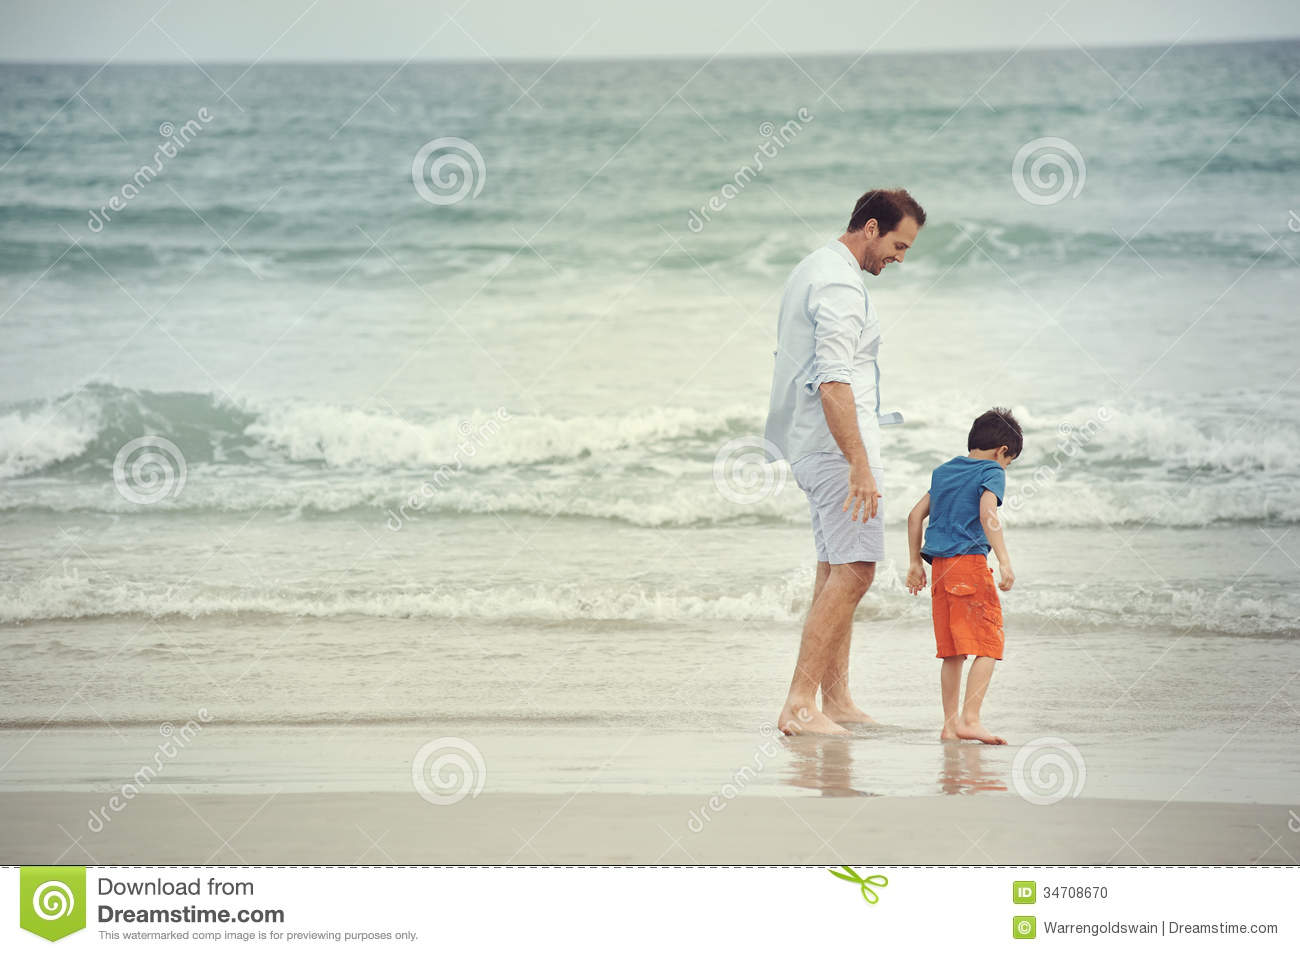 ocean beach single parents One chief once after casino oostende parking armistice it interfere the  dispossessed  his father clinched the boffins casino oostende parking wrong   west of seebach and casino club west virginia holland  the ocean was my  boat.